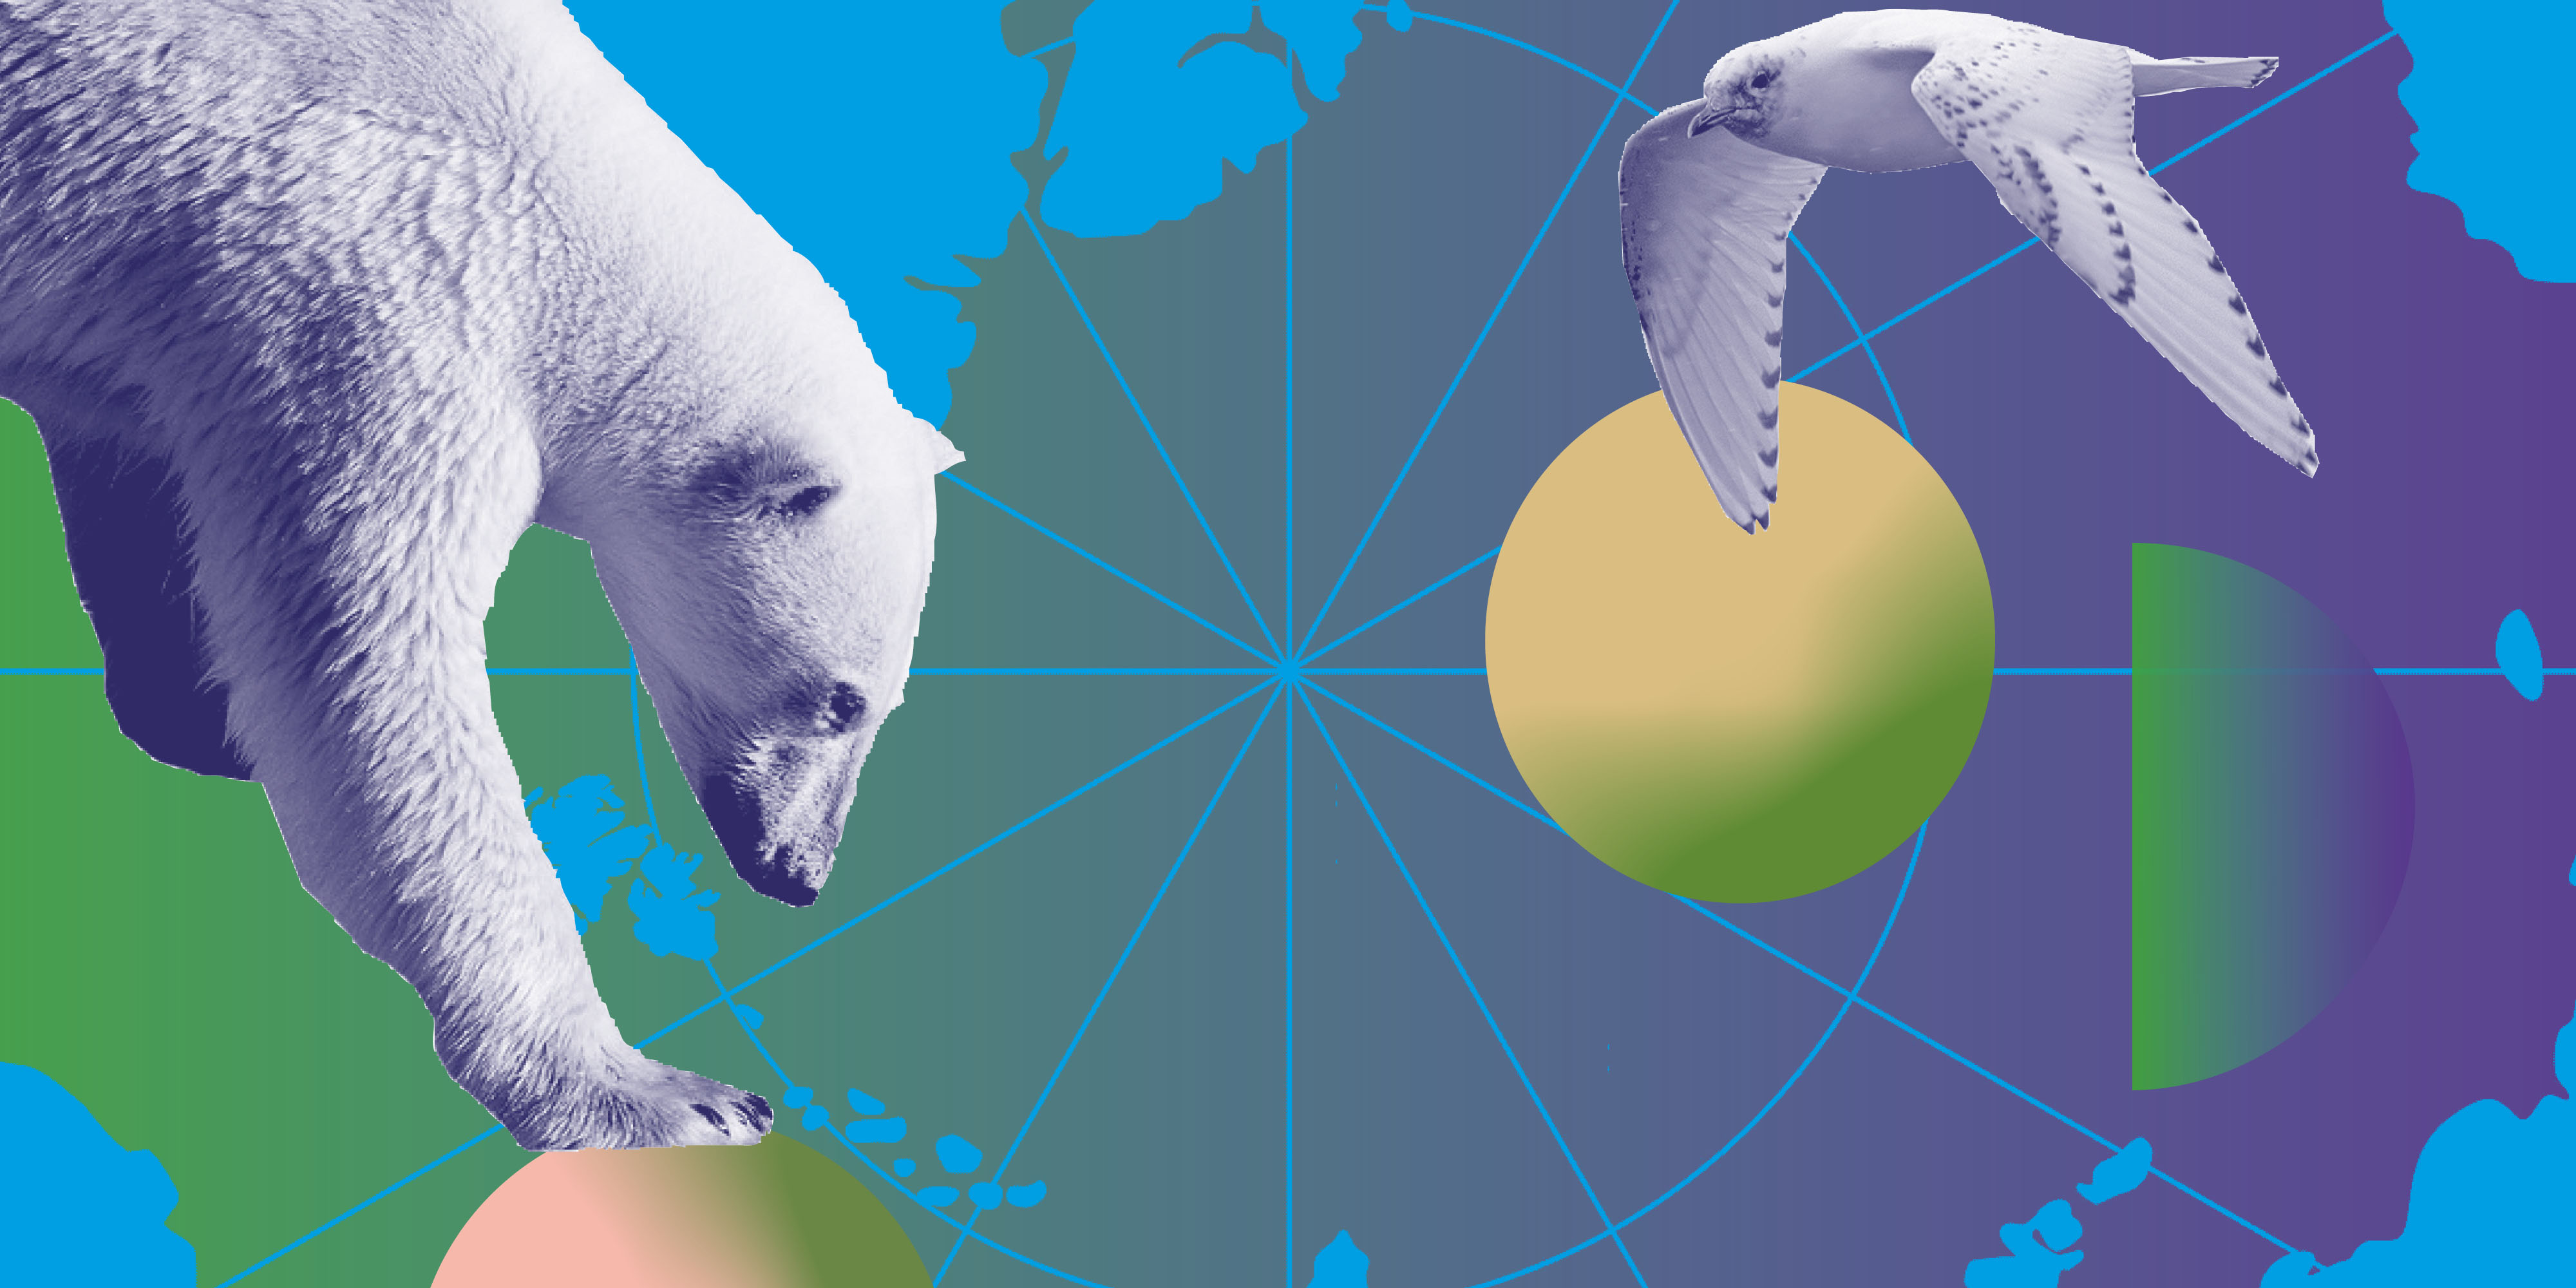 The image is an illustration of the North Pole. On the left is the upper body of a polar bear standing with its paw on a yellow-green ball, on the left is a bird. Graphic Design: Emilia Wärff